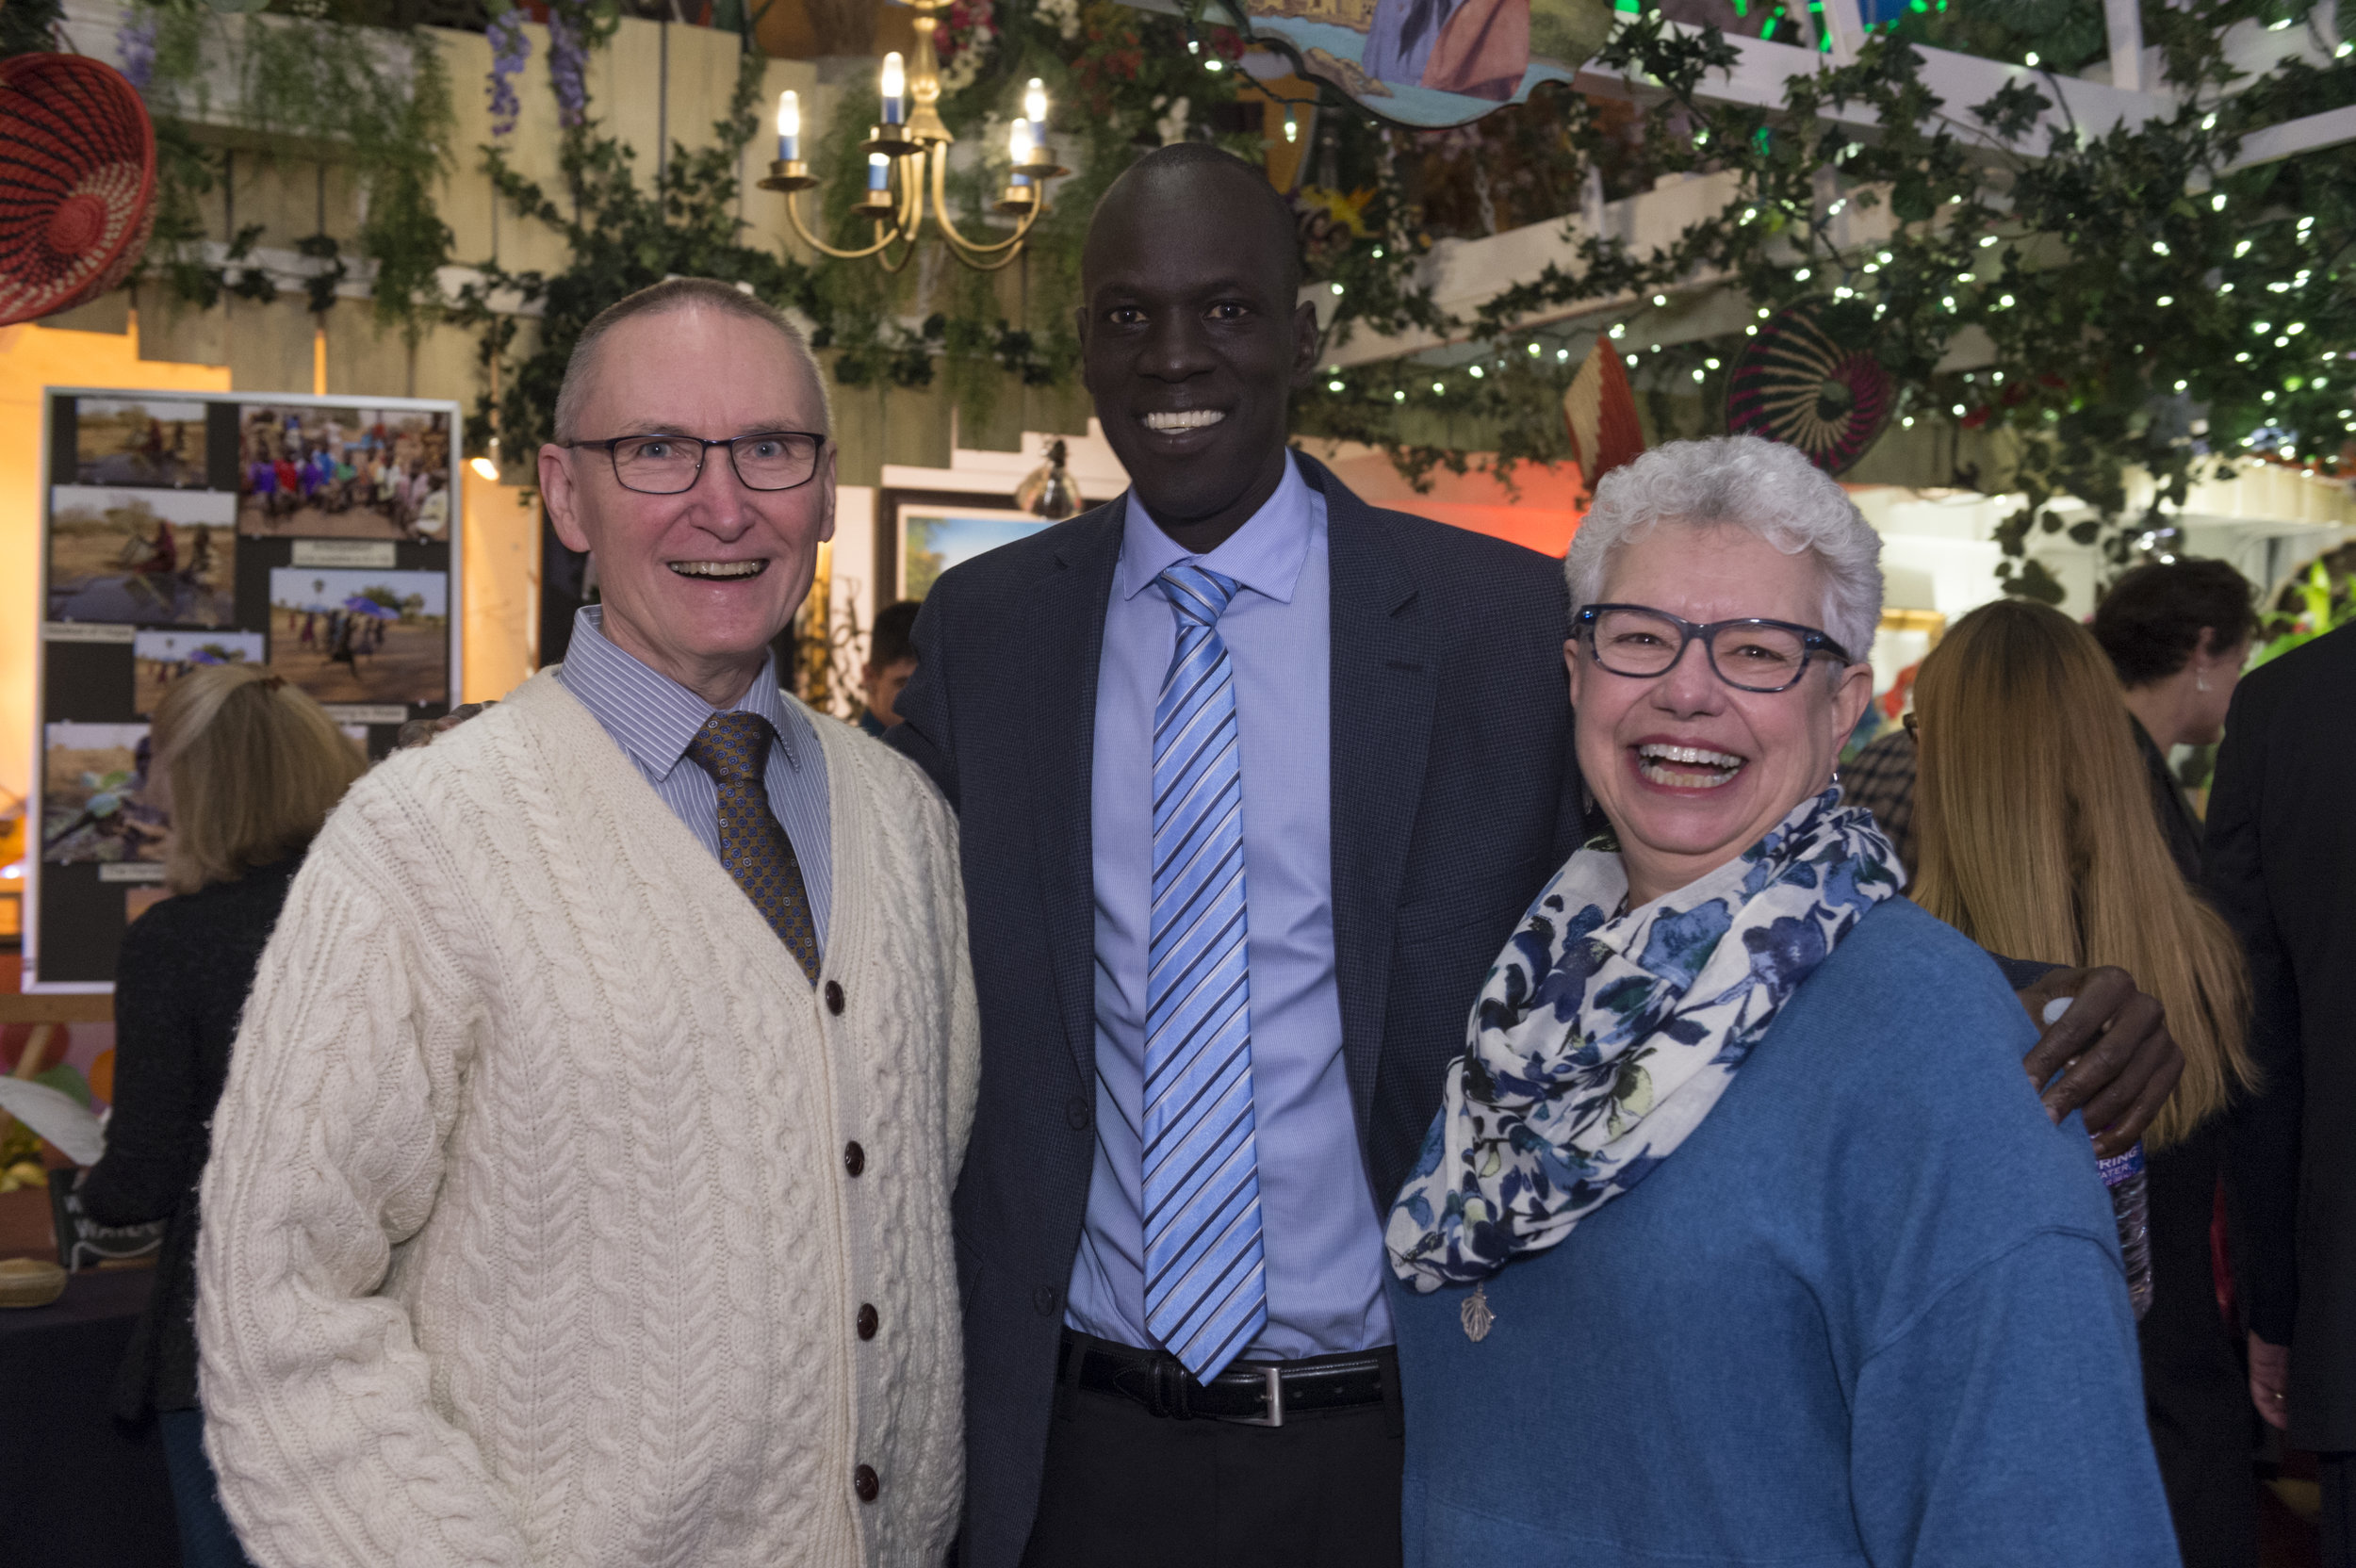 Nancy and wayne reinert with salva in 2016 at our annual fundraiser